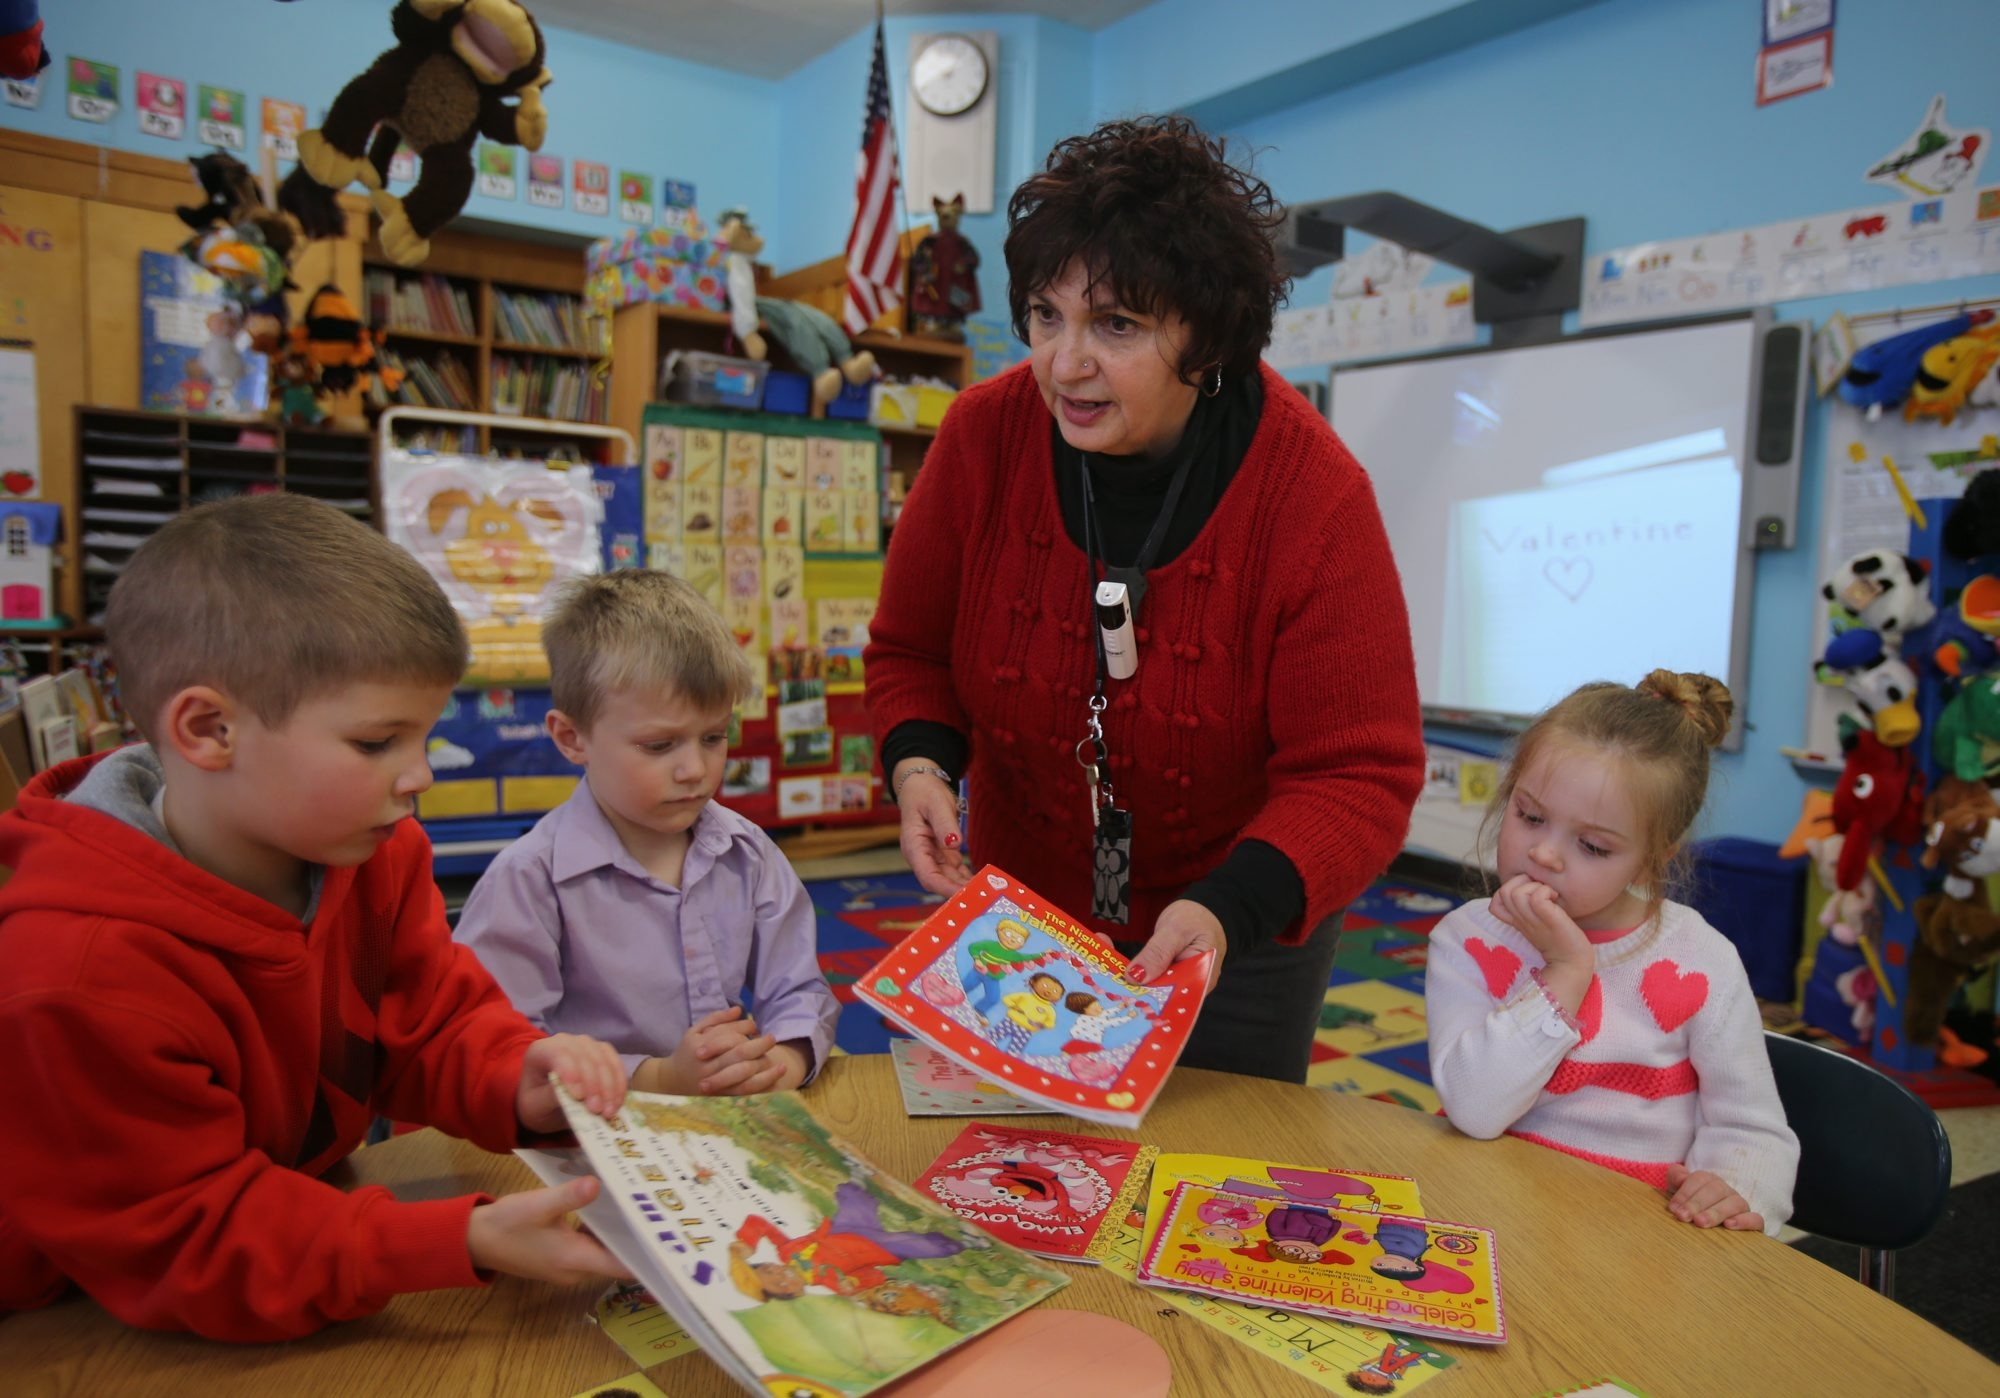 Ms. Joan Pawlukovich works with students in her pre-K class at the 79th St. Elementary School in Niagara Falls, Friday.